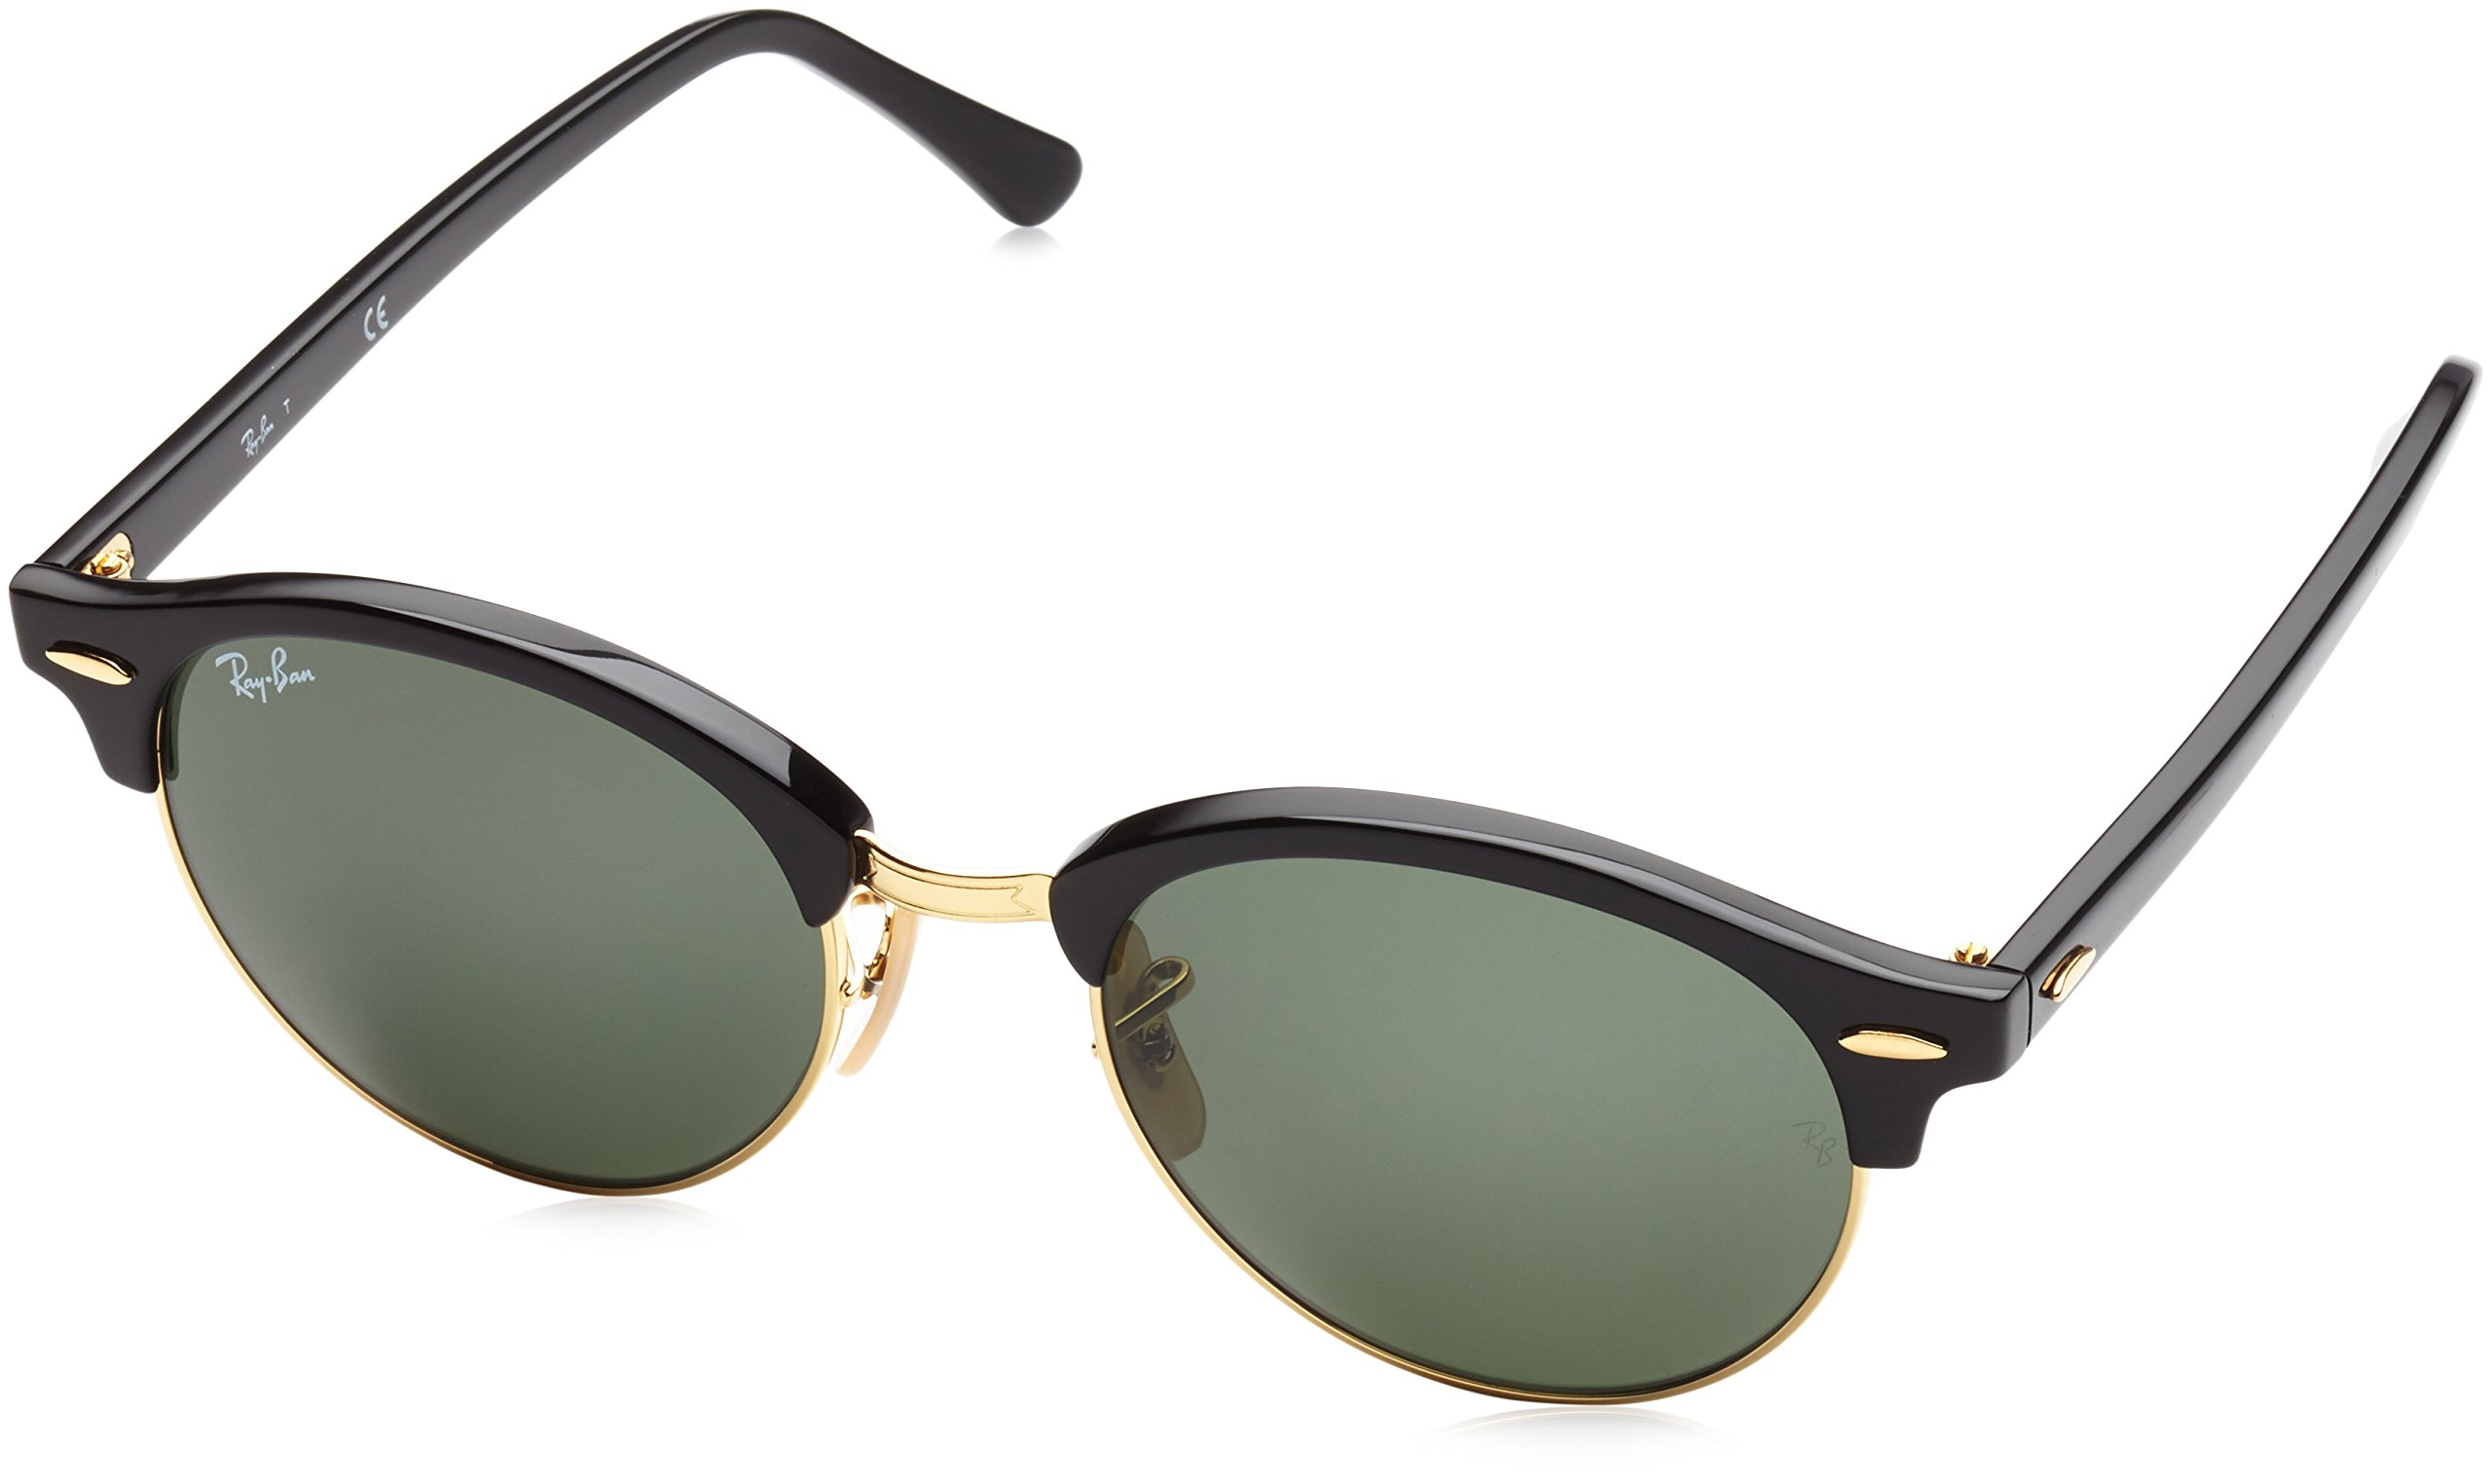 Ray-Ban Clubround RB4246 51 Non Polarized Sunglasses Black Frame/ Green Lenses 51mm by Ray-Ban